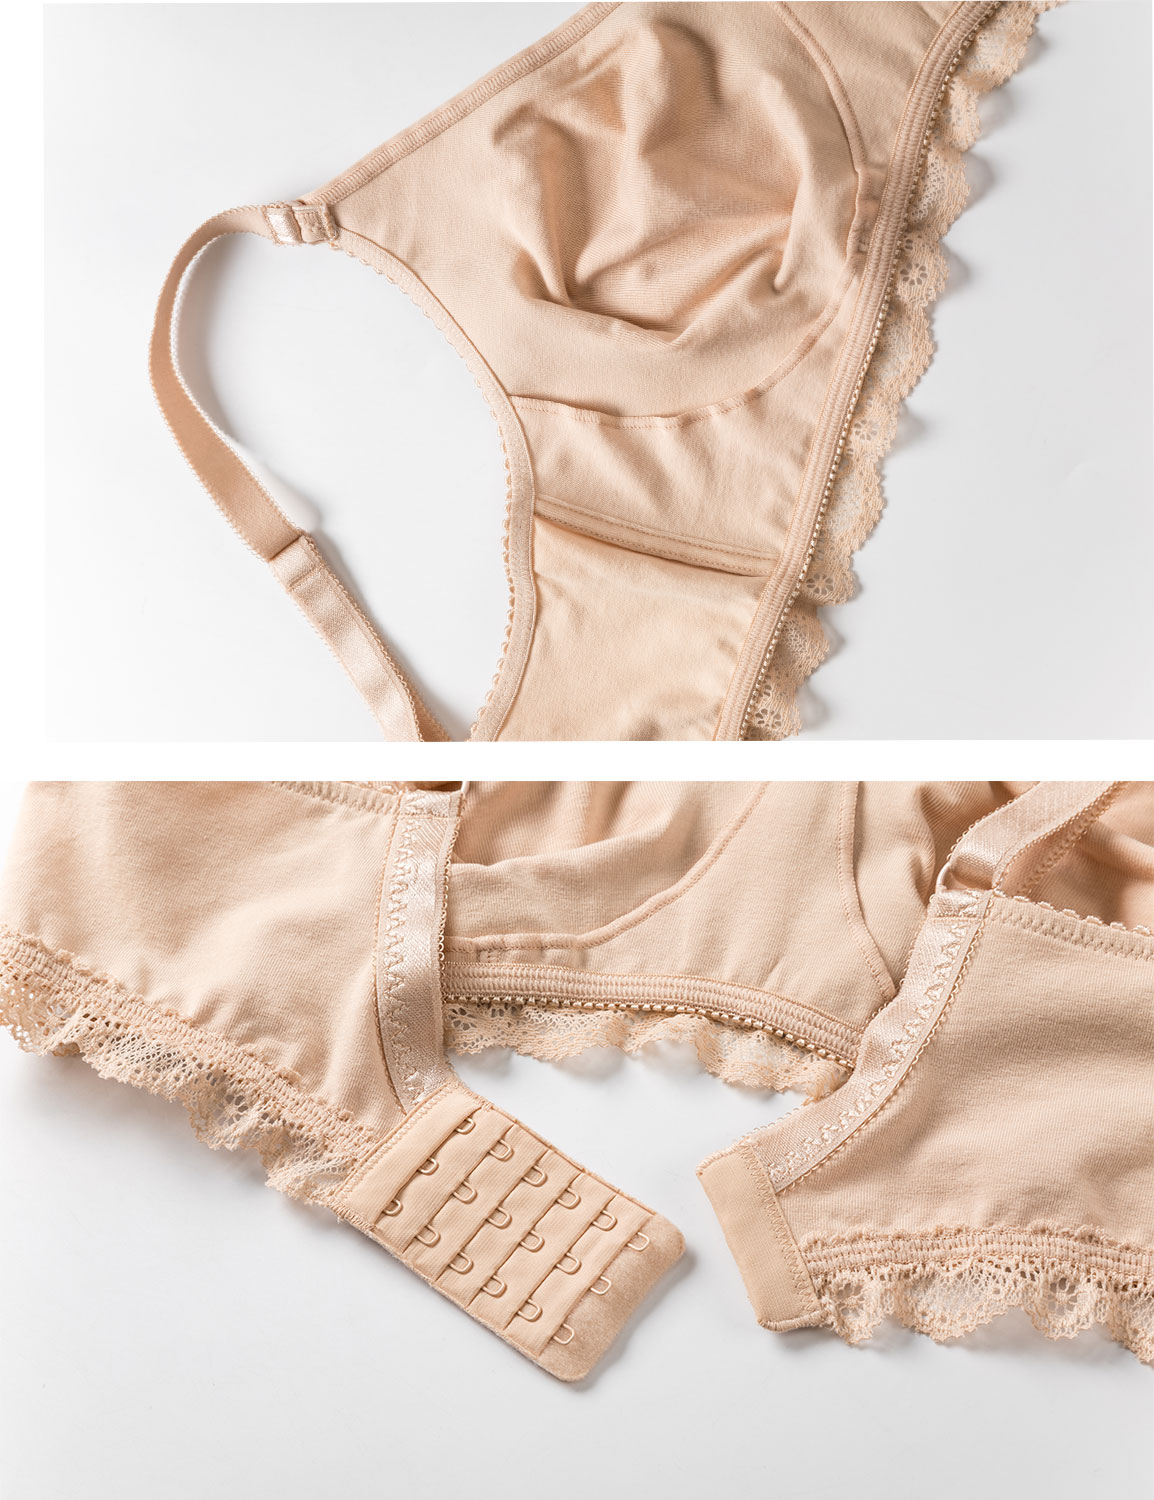 Women-039-s-Lace-Soft-Wirefree-Non-Padded-Full-Coverage-Cotton-Bra-Plus-Size thumbnail 9